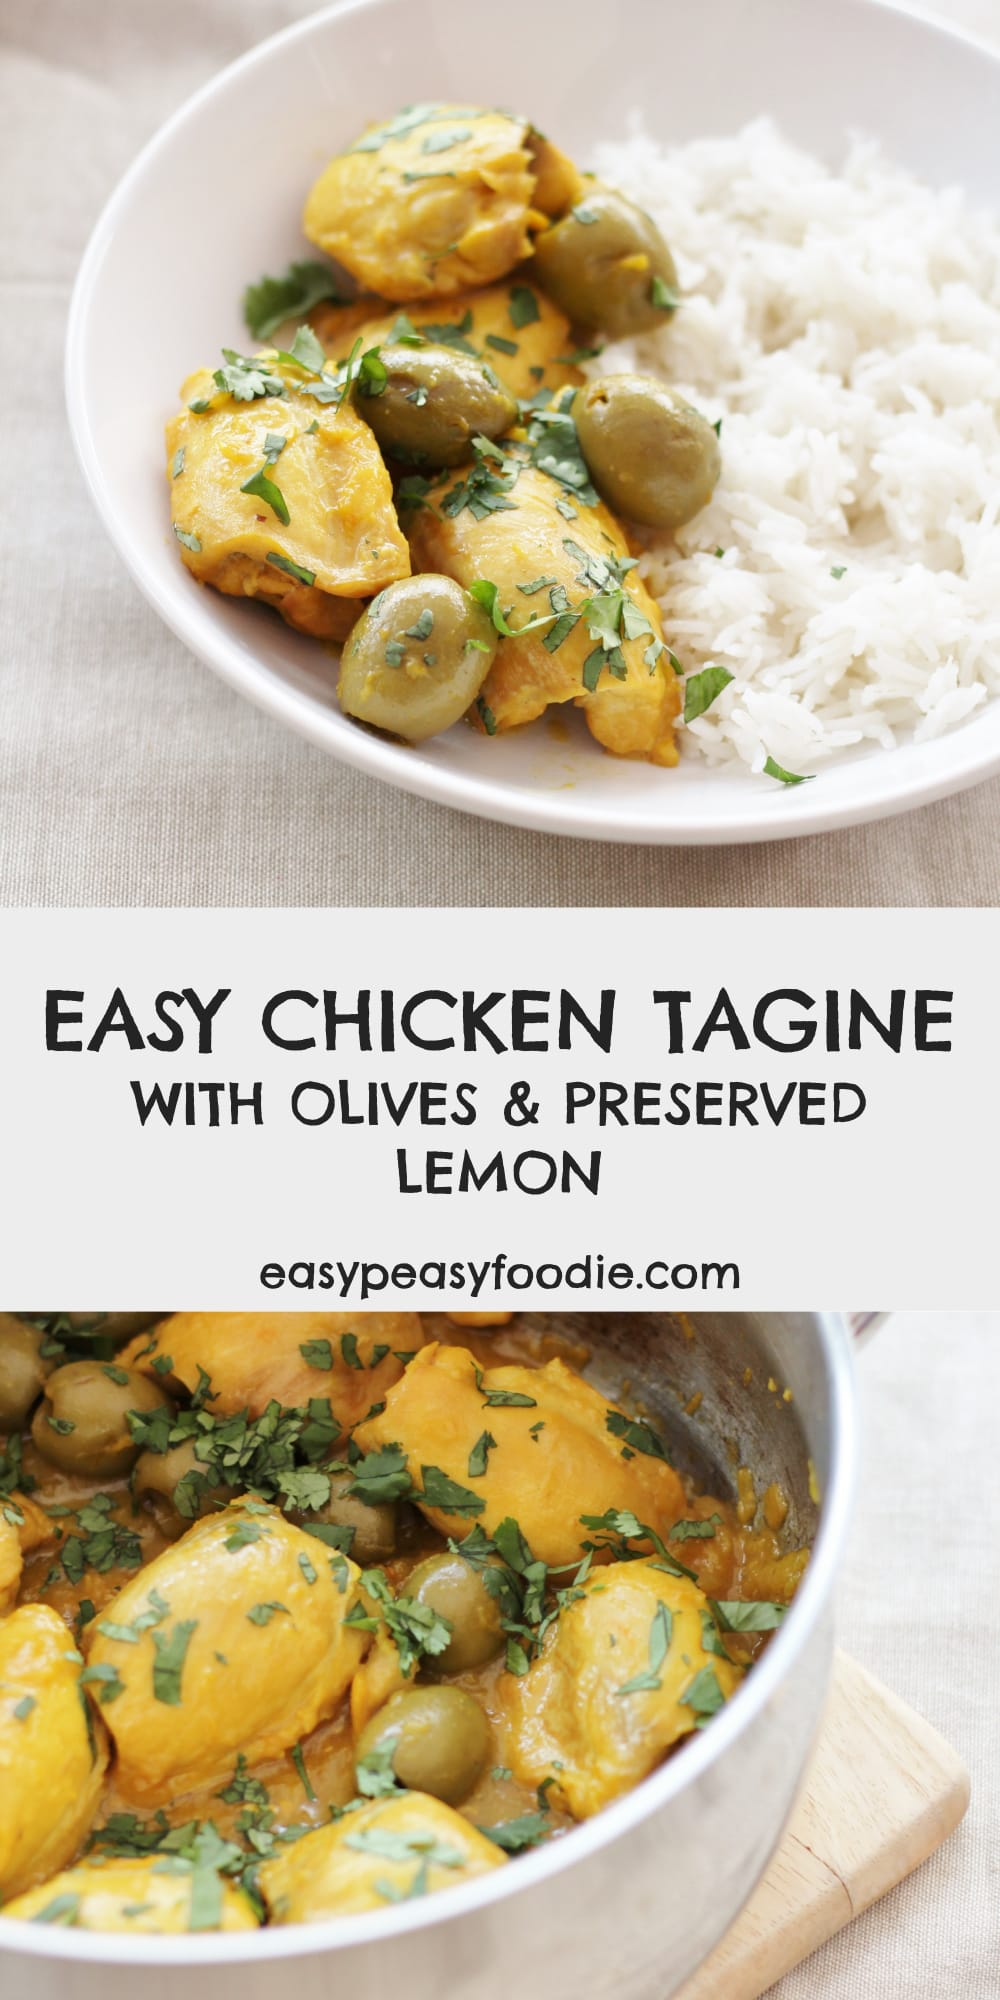 Easy Chicken Tagine with Olives and Preserved Lemon - pinnable image for Pinterest